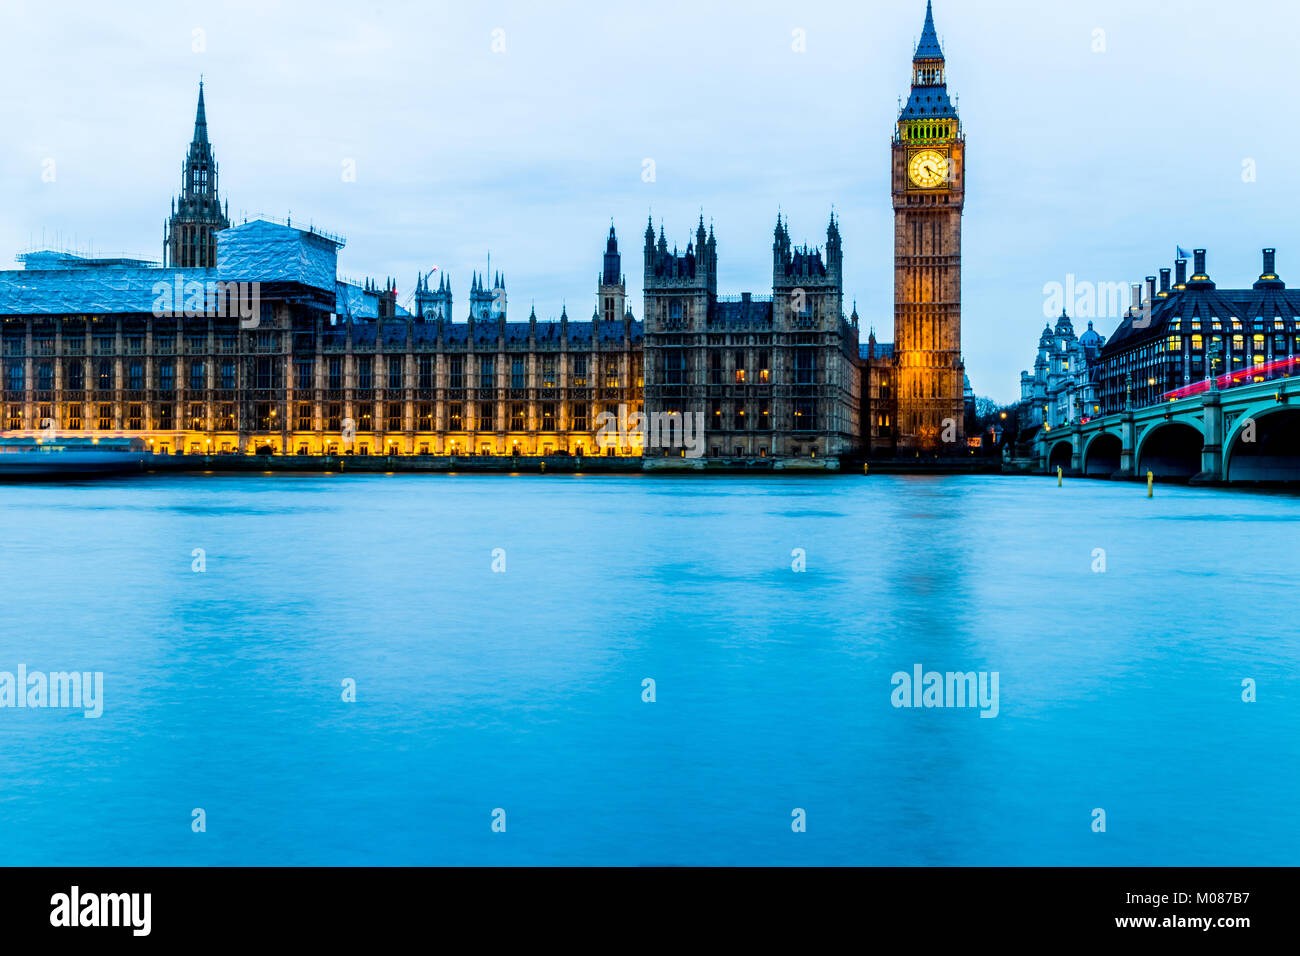 Big Ben, les Maisons du Parlement Photo Stock